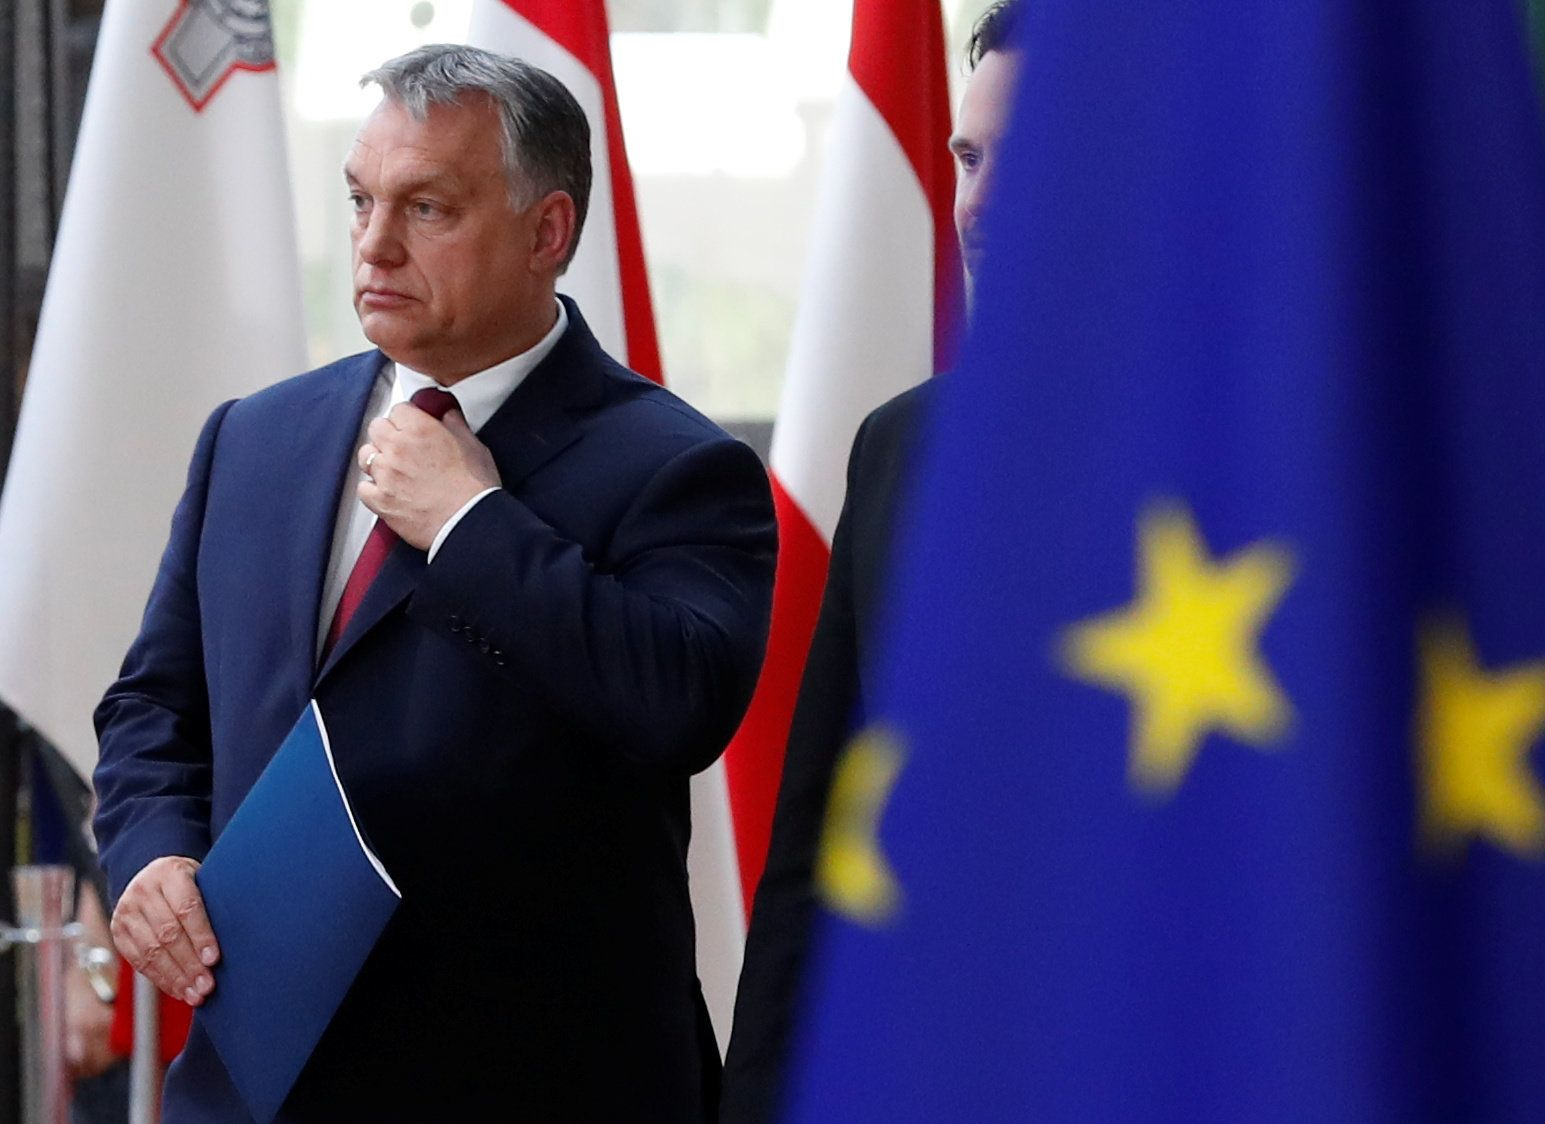 Hungarian Prime Minister Viktor Orban arrives at the European Union summit in Brussels on June 28, 2018.